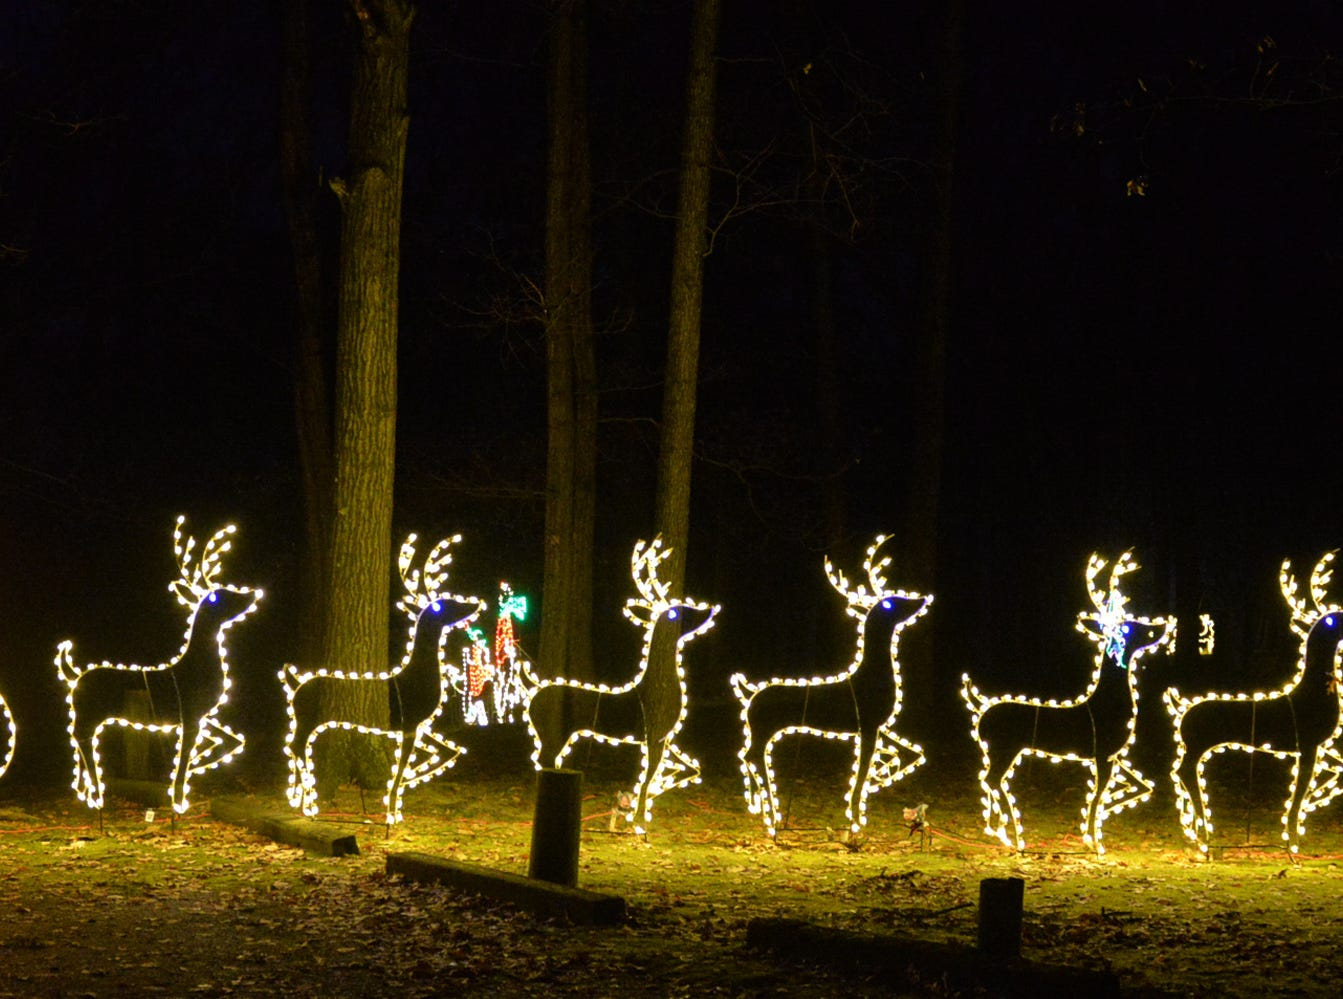 Holiday Lights In The Park at Lebanon's Coleman Memorial Park presented Wednesday through Sunday evenings by the The Community of Lebanon Association through December 30.